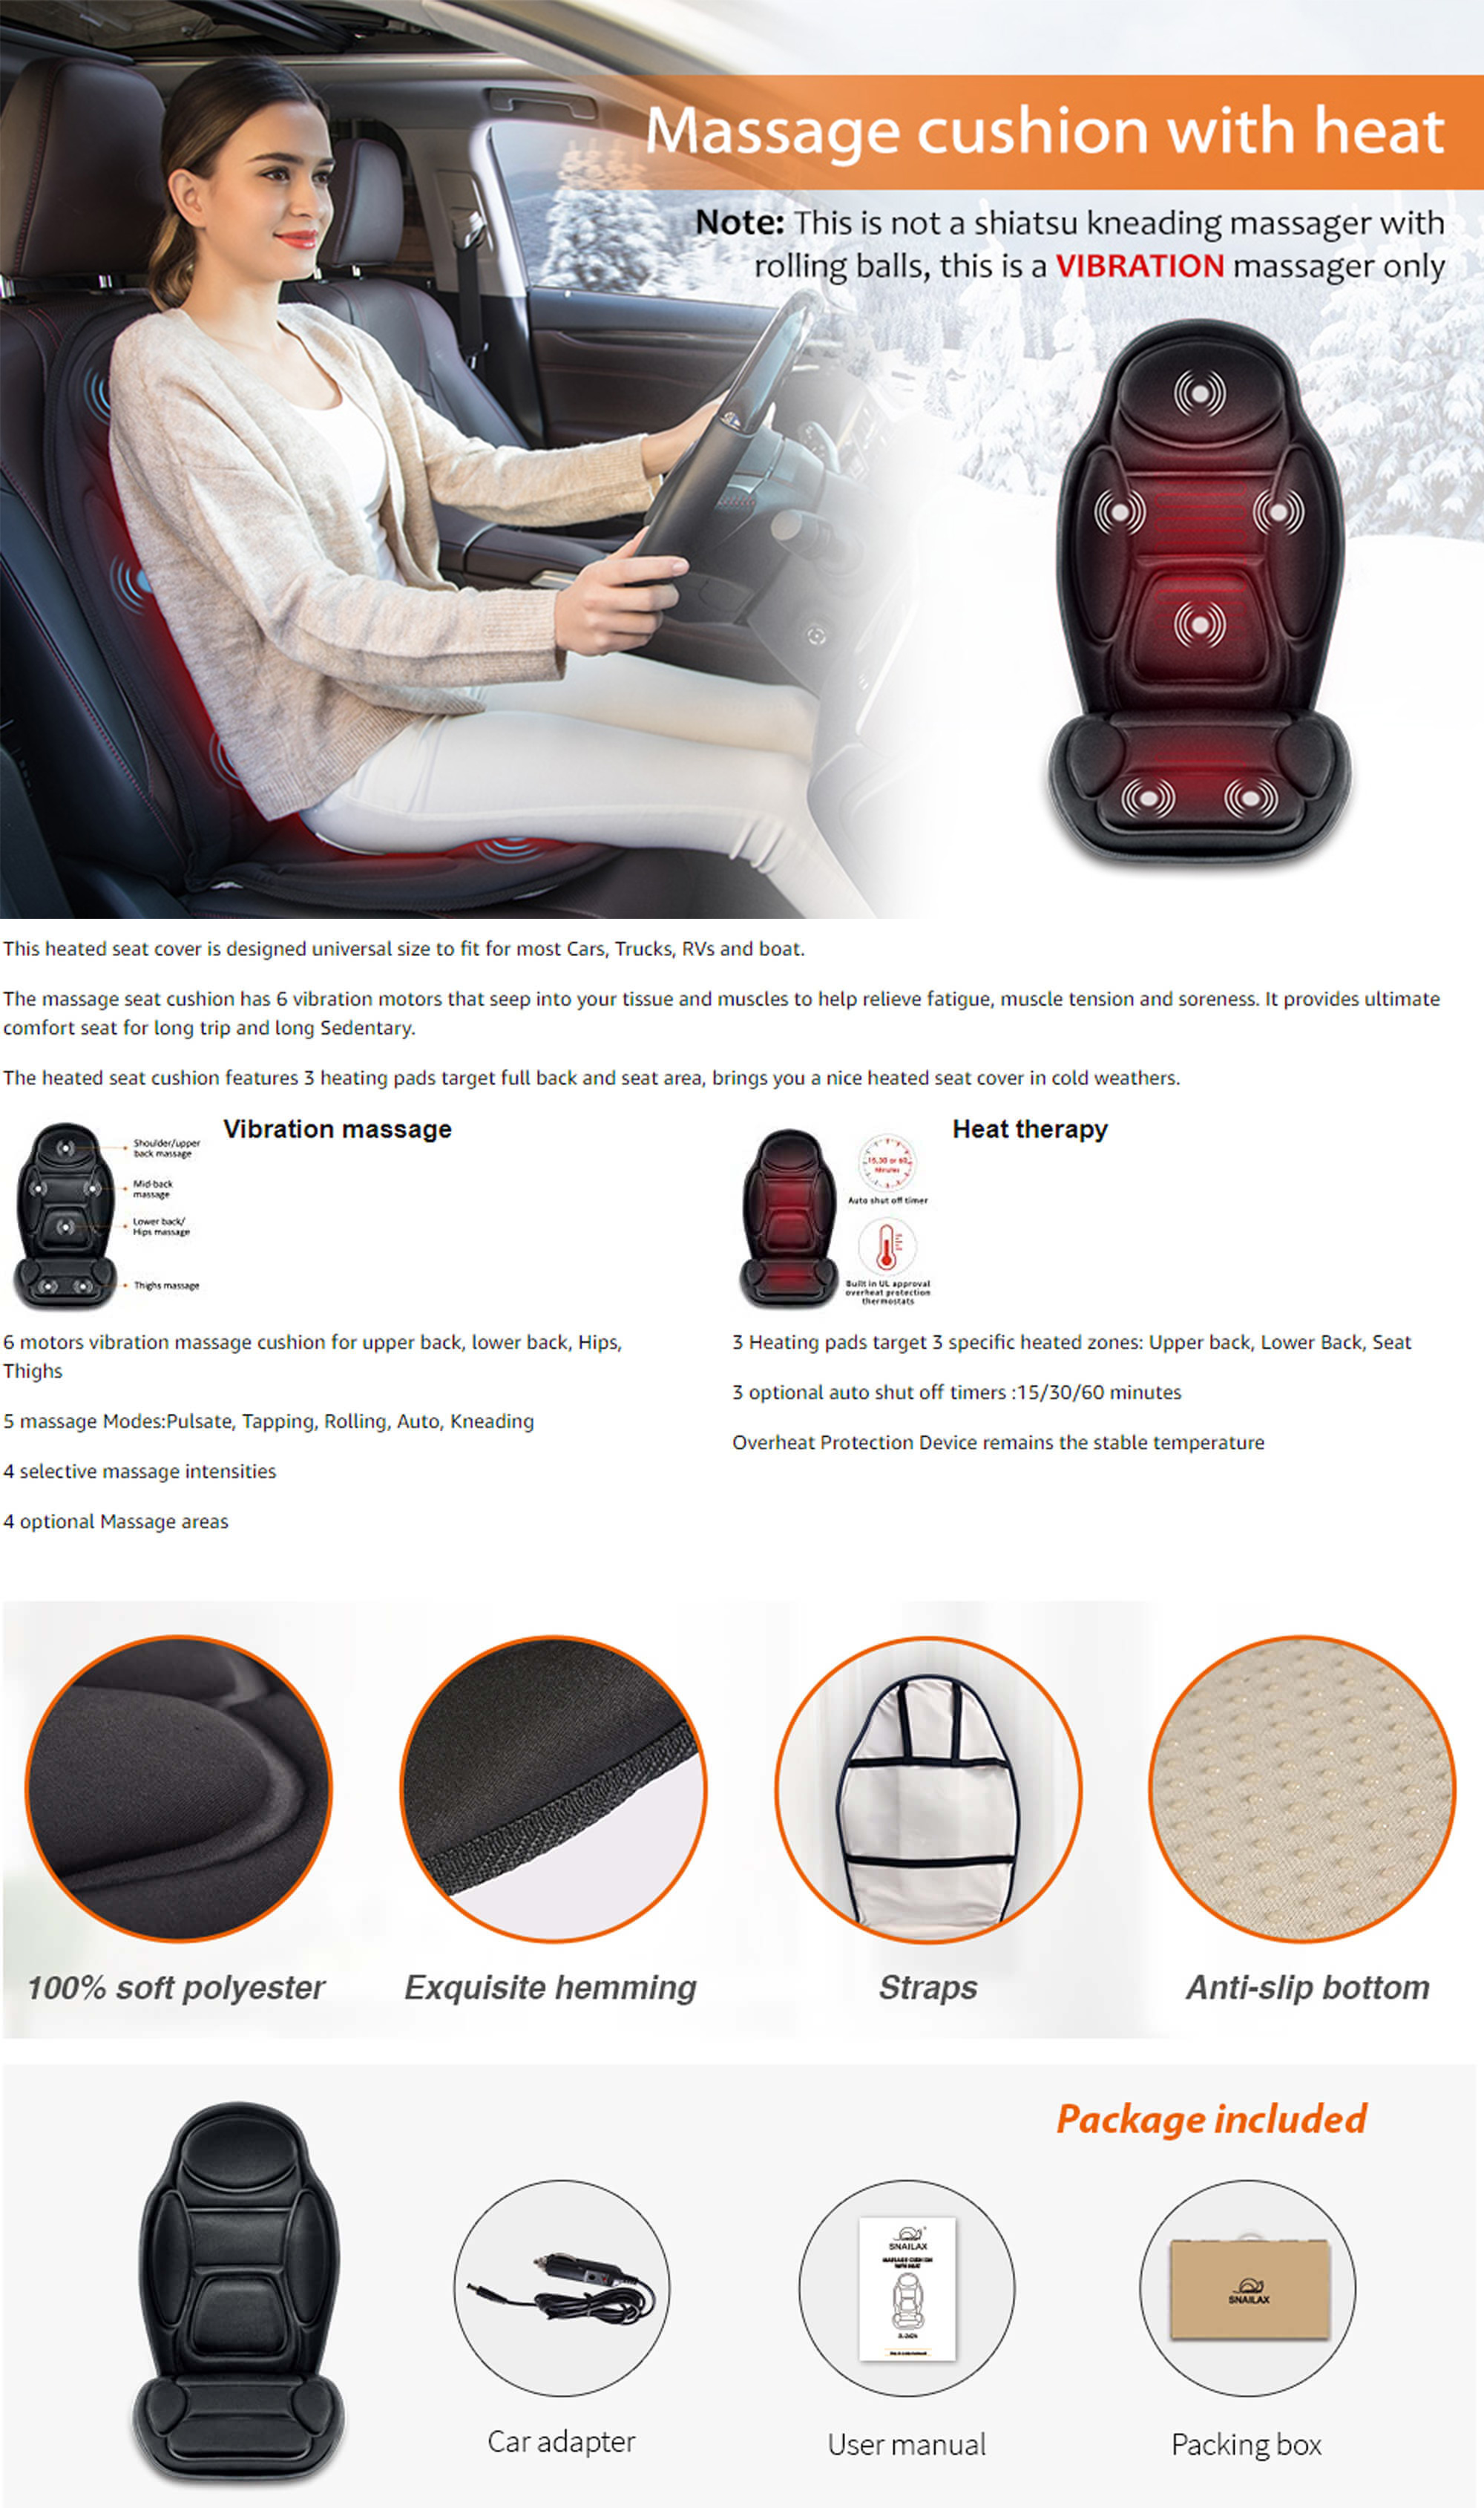 Snailax Car Seat Cushion With Heat Features